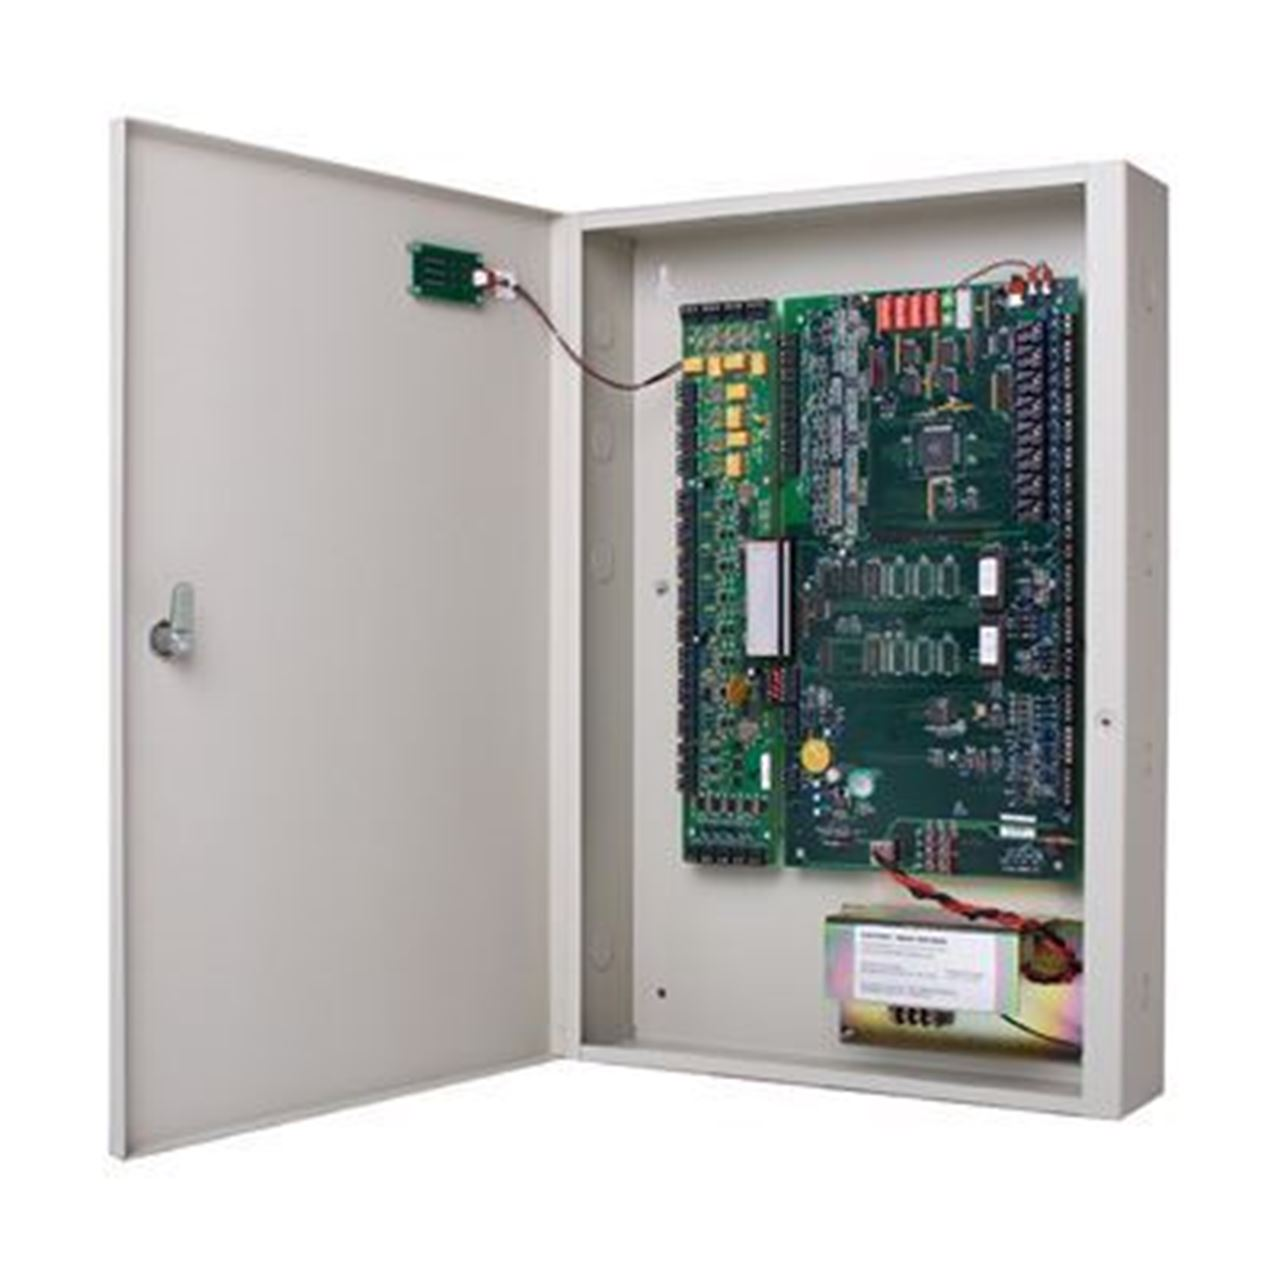 Software House AS0073-000 Access control controller VANTAG LLC Armenia